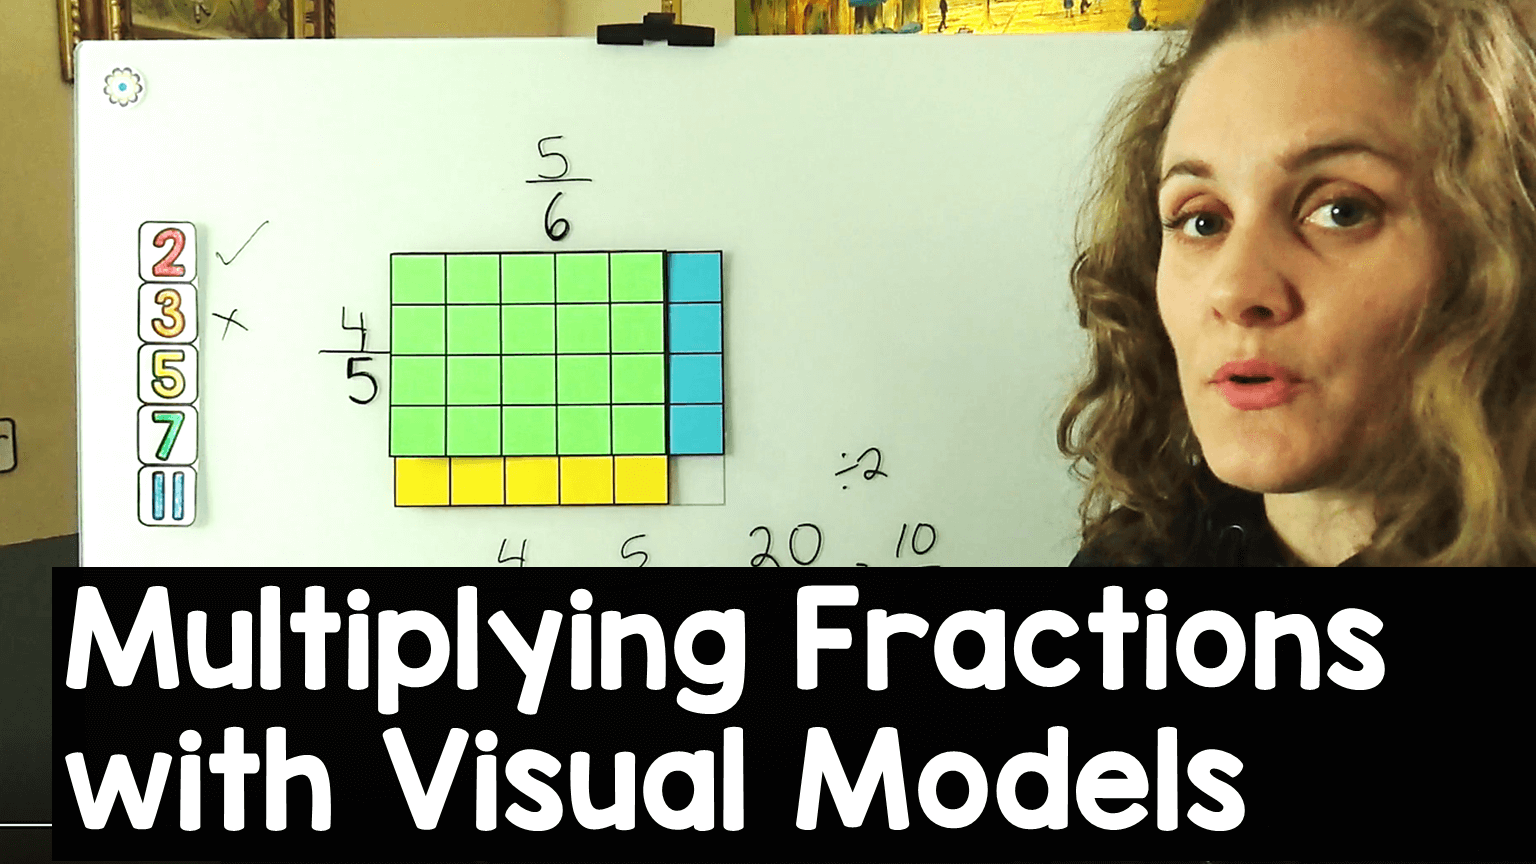 How to multiply fractions using area models video on my YouTube channel